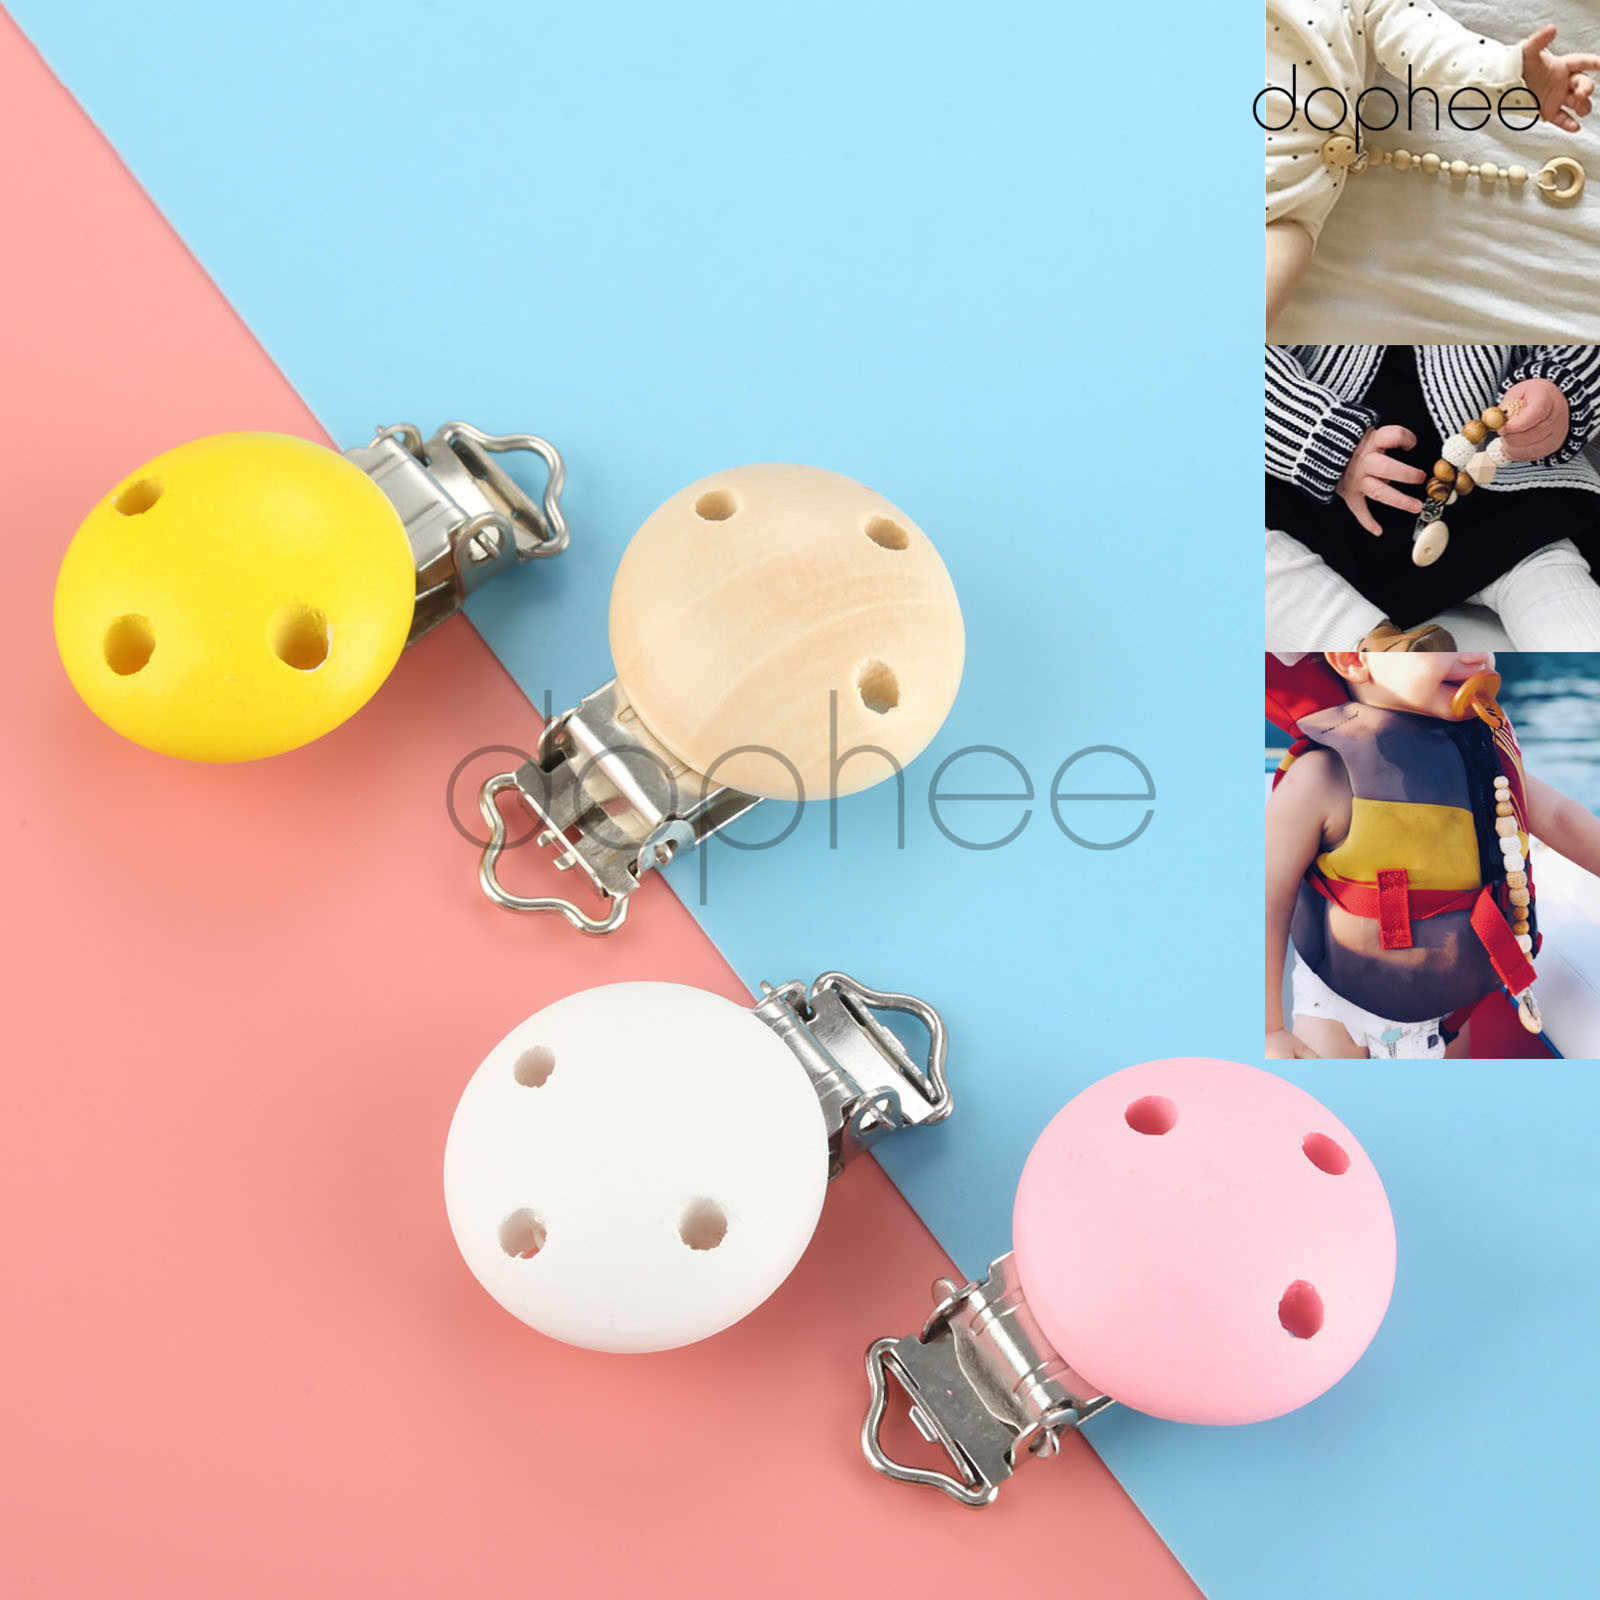 dophee 5pcs Multi-Color Natural Wooden Baby Pacifier Clips Infant Dummy Clips For Baby Clasps Holders Accessories